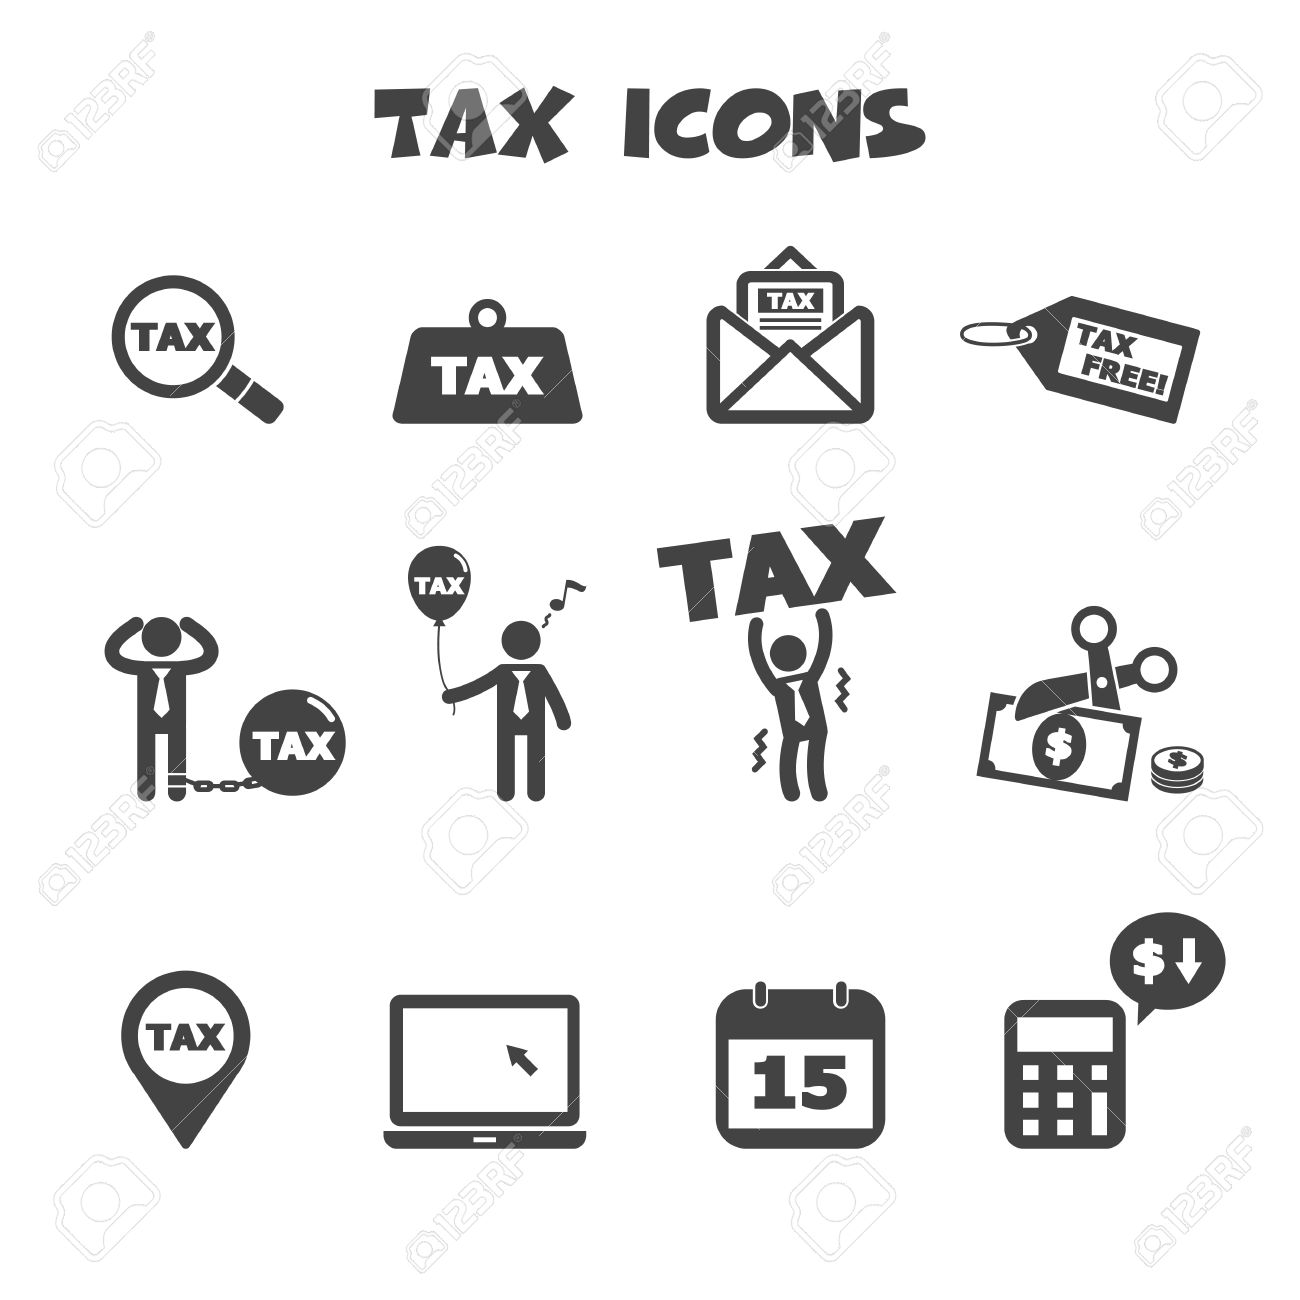 Tax icons symbols royalty free cliparts vectors and stock tax icons symbols stock vector 26617880 biocorpaavc Images